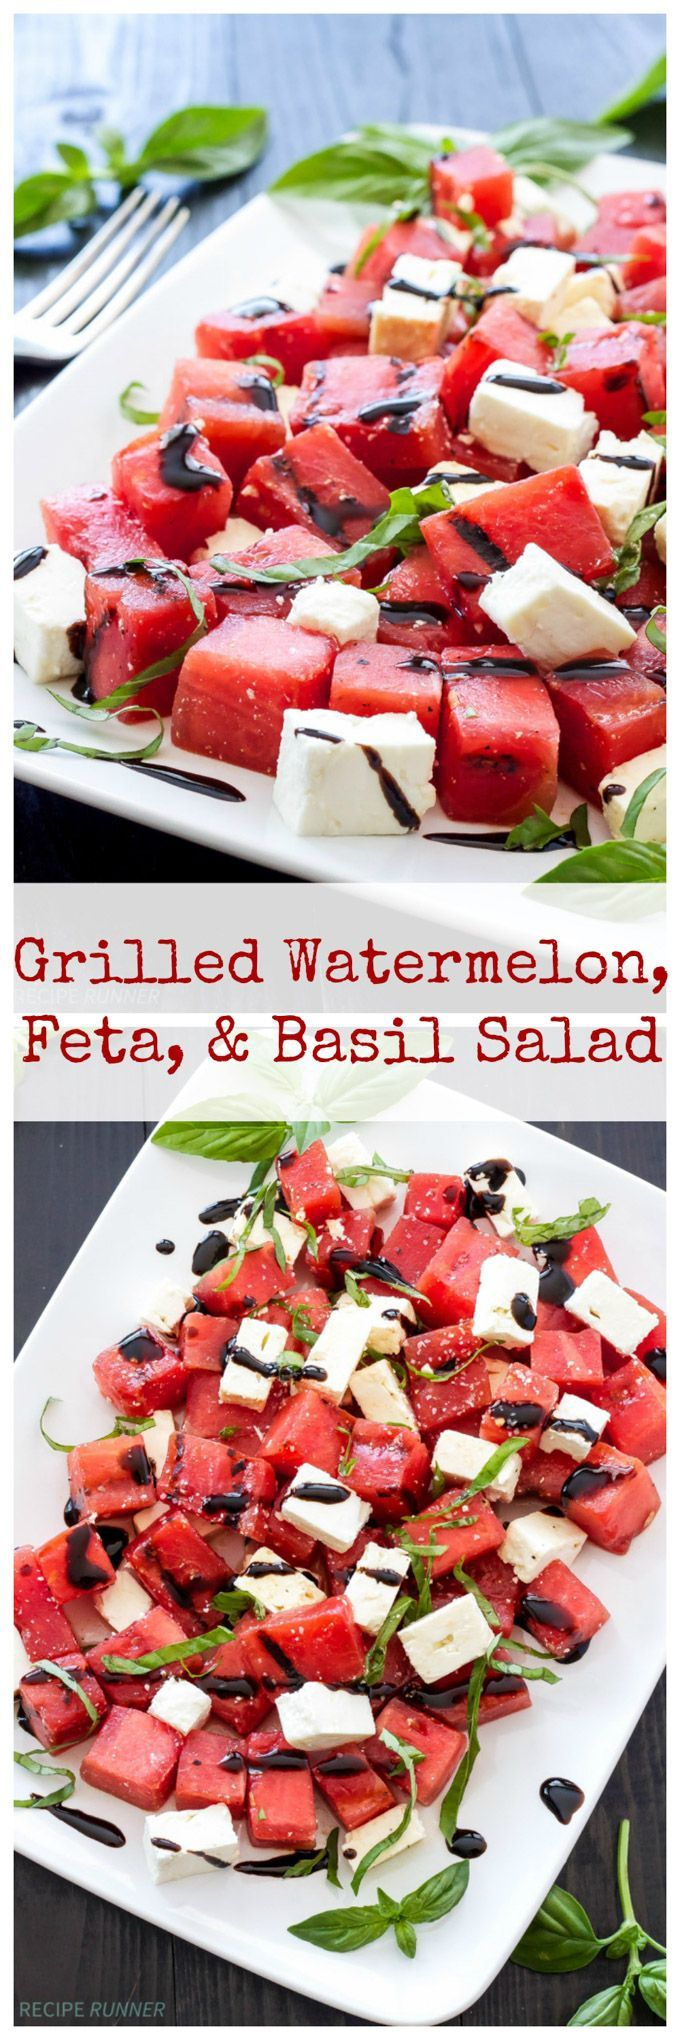 awesome Grilled Watermelon, Feta, and Basil Salad - Recipe Runner